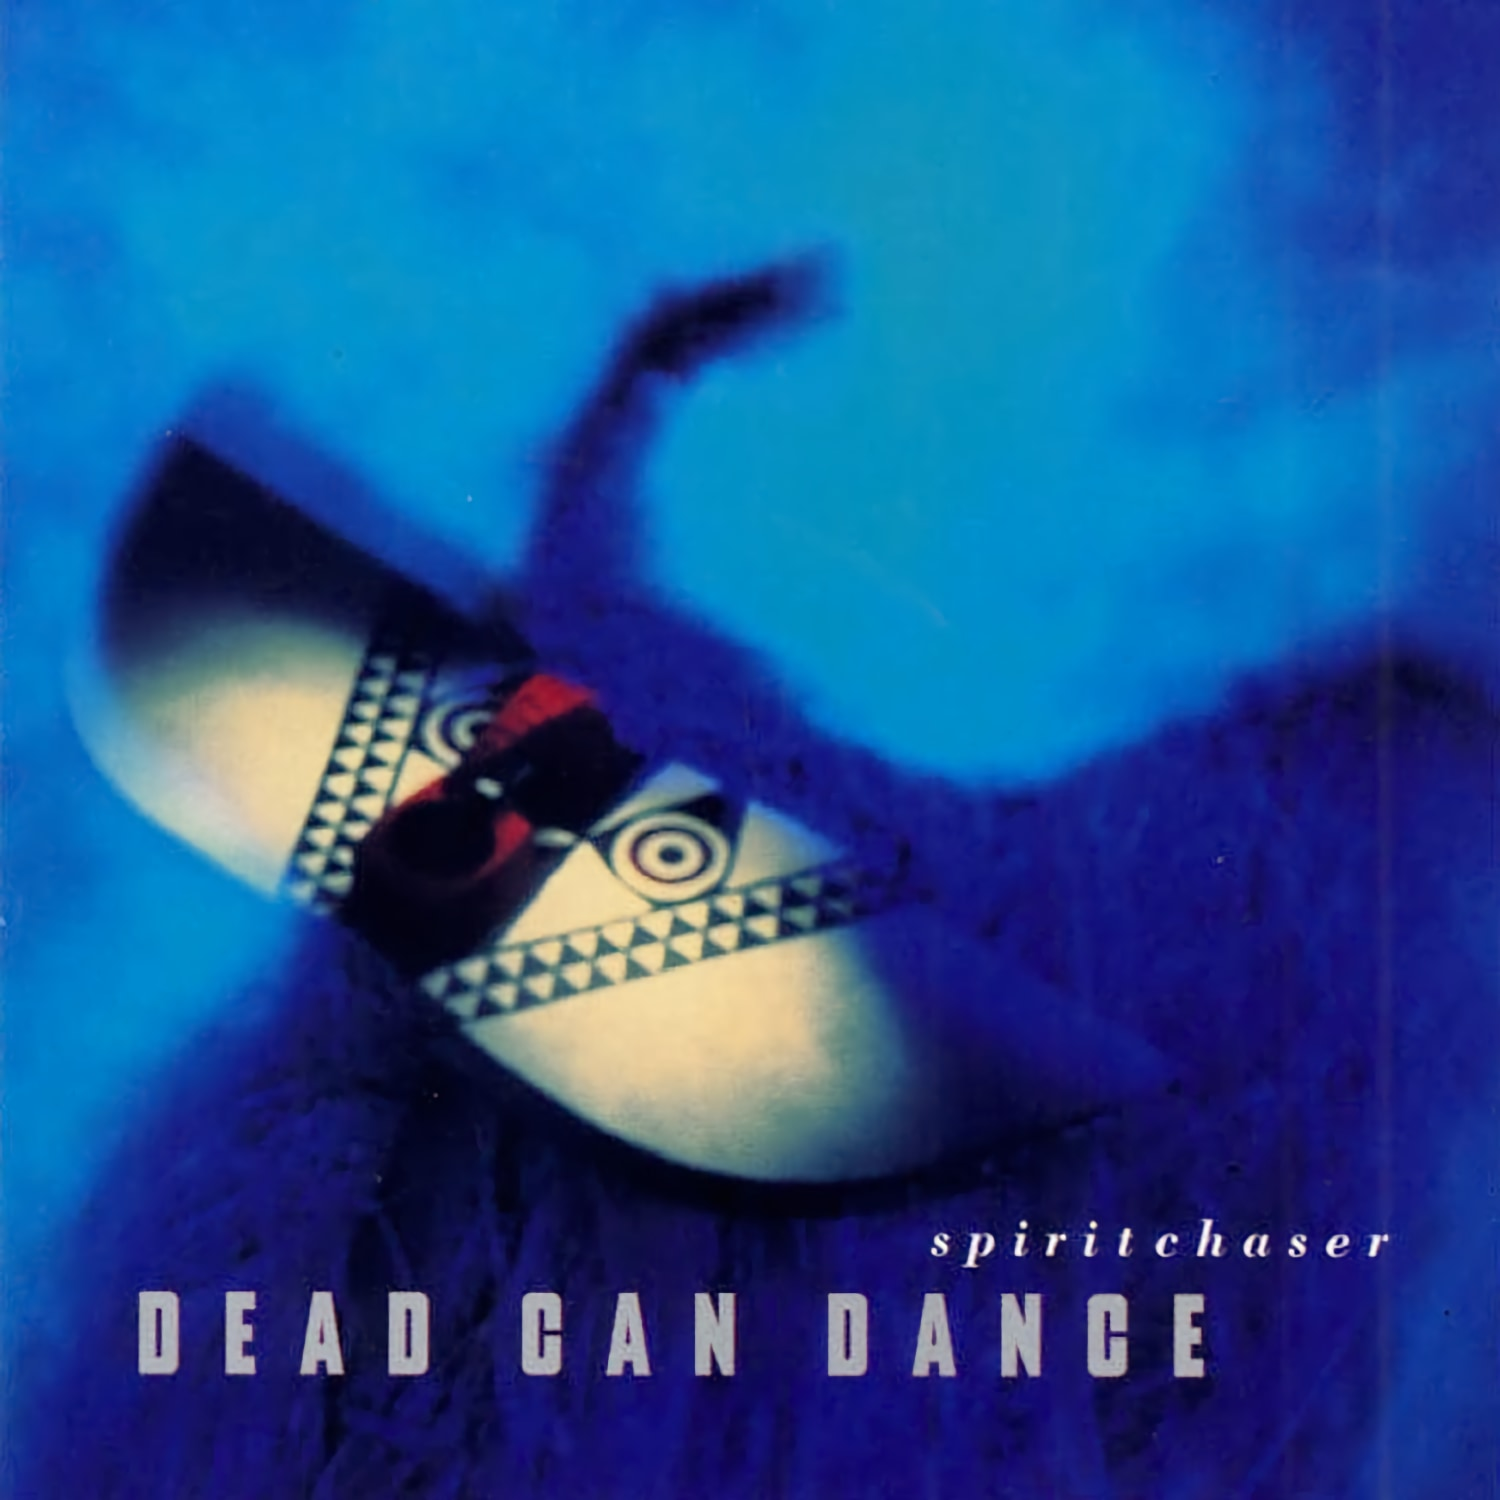 Dead Can Dance - Spirit Chaser